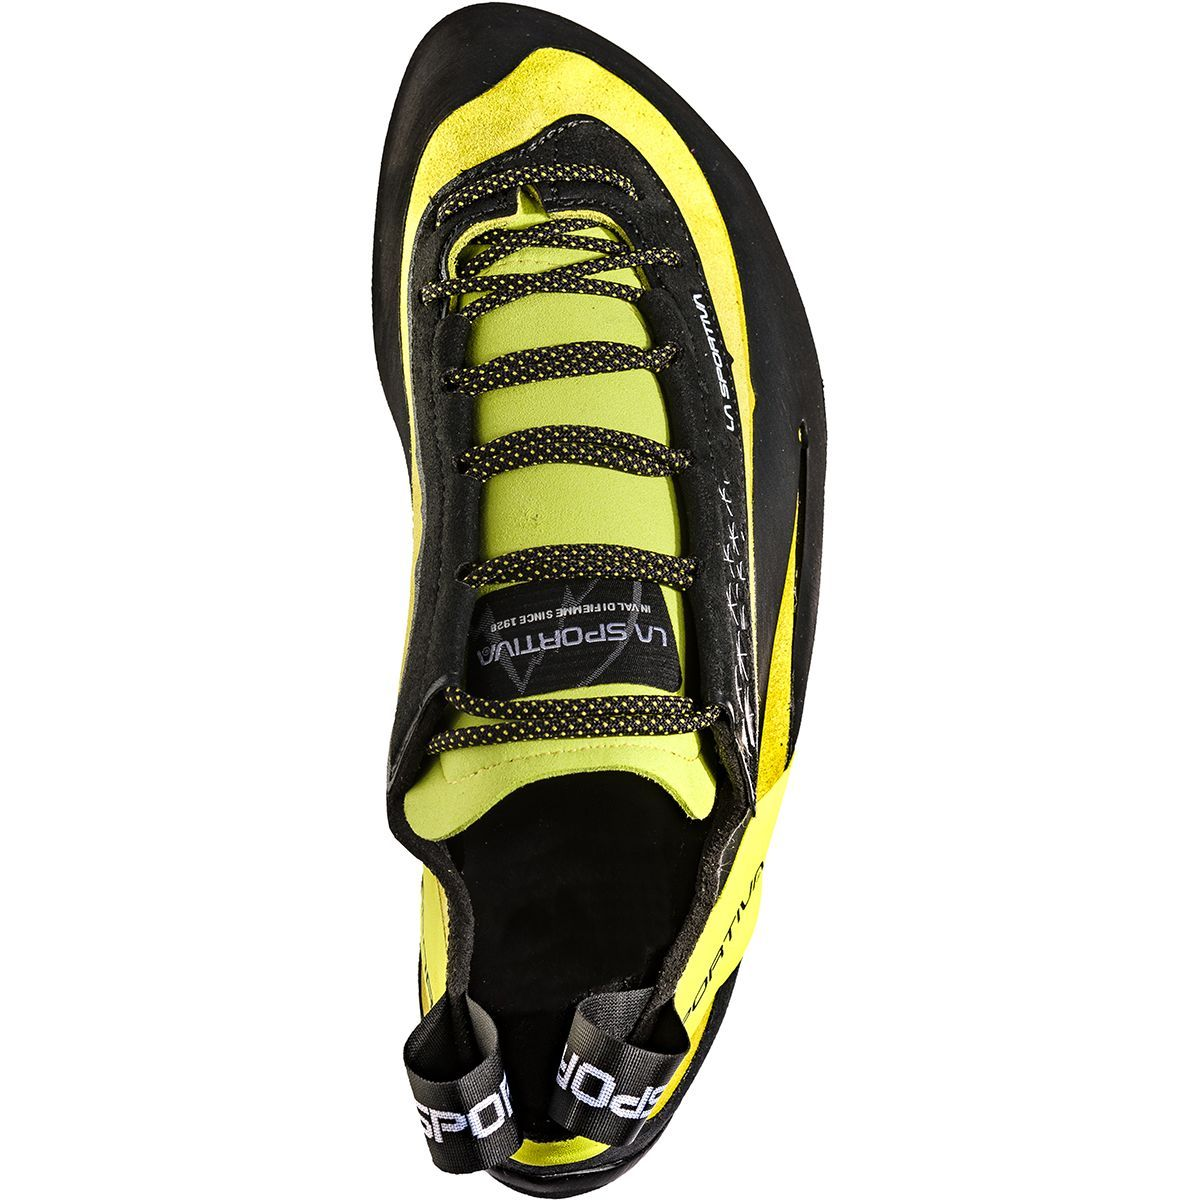 La Sportiva Miura climbing shoe, view from above showing the lace detail